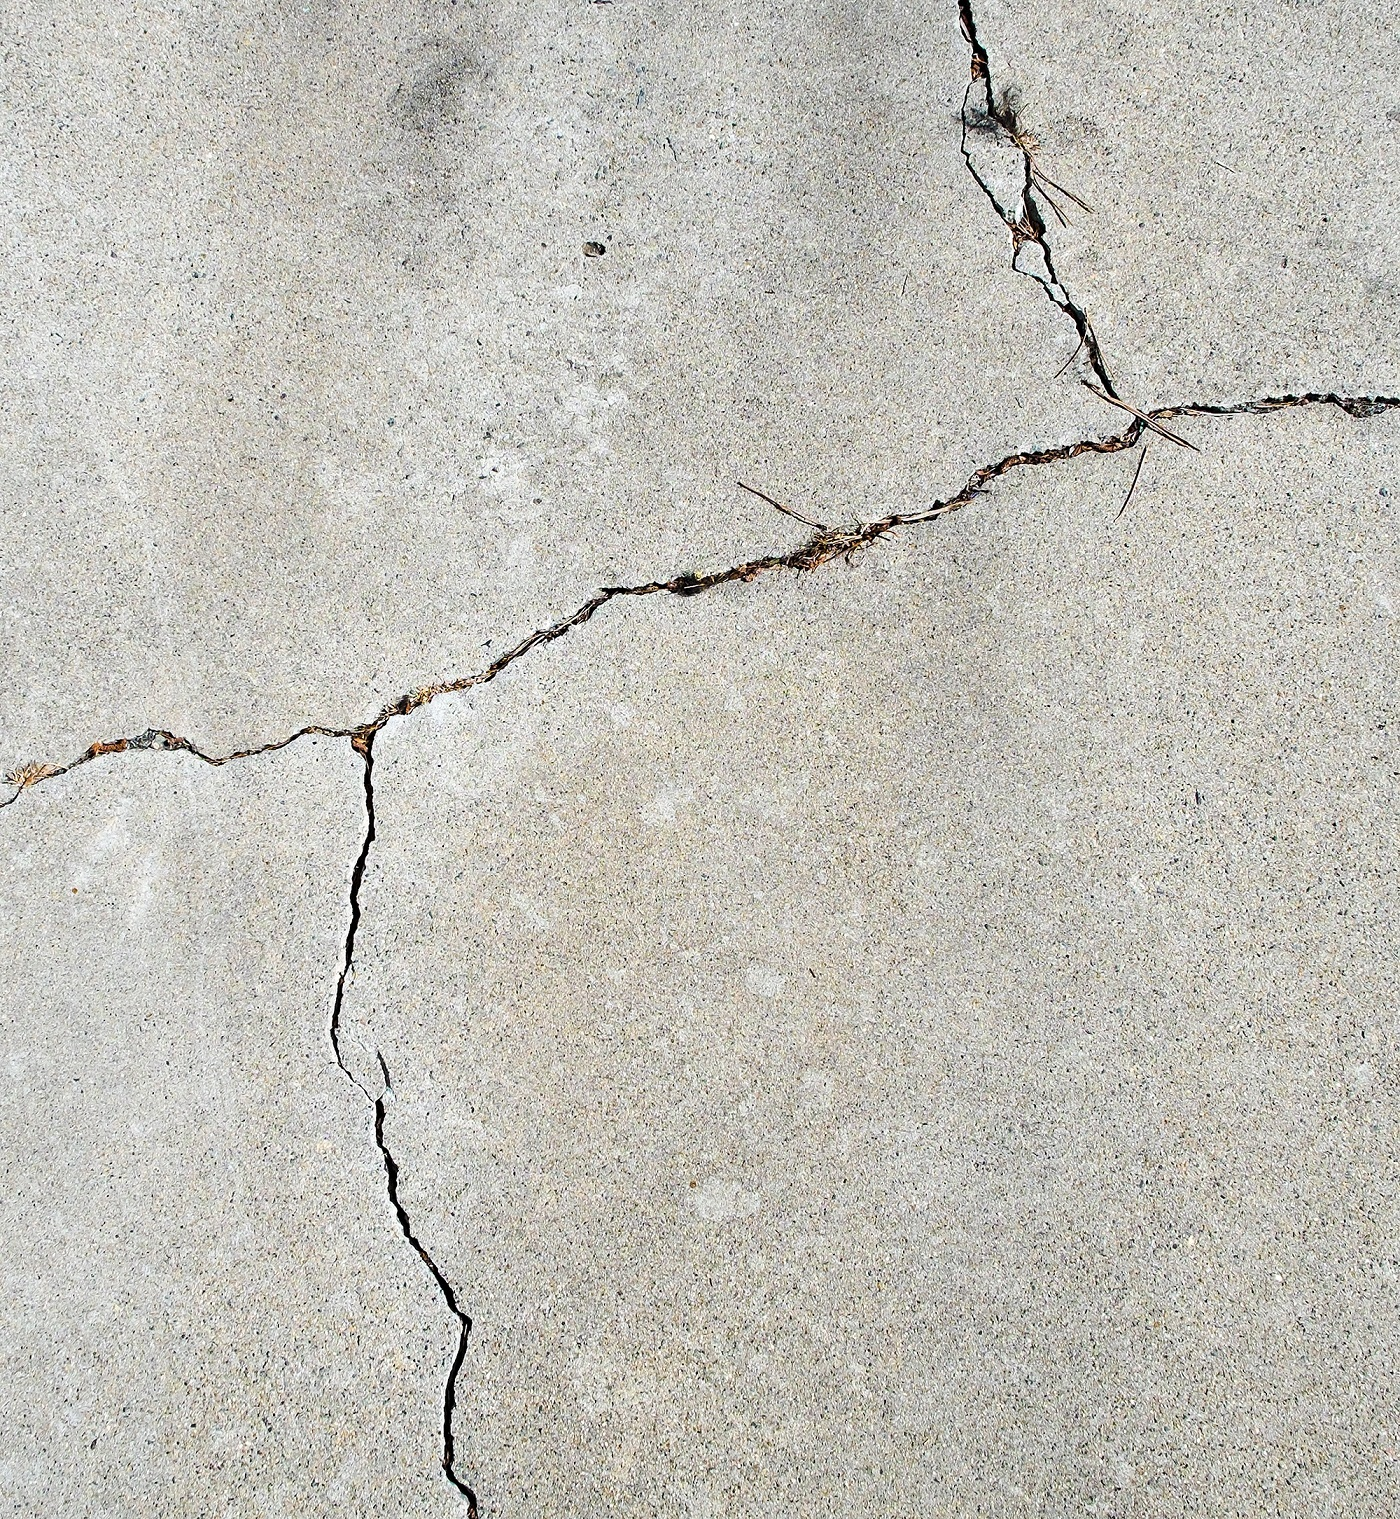 Cracked driveway